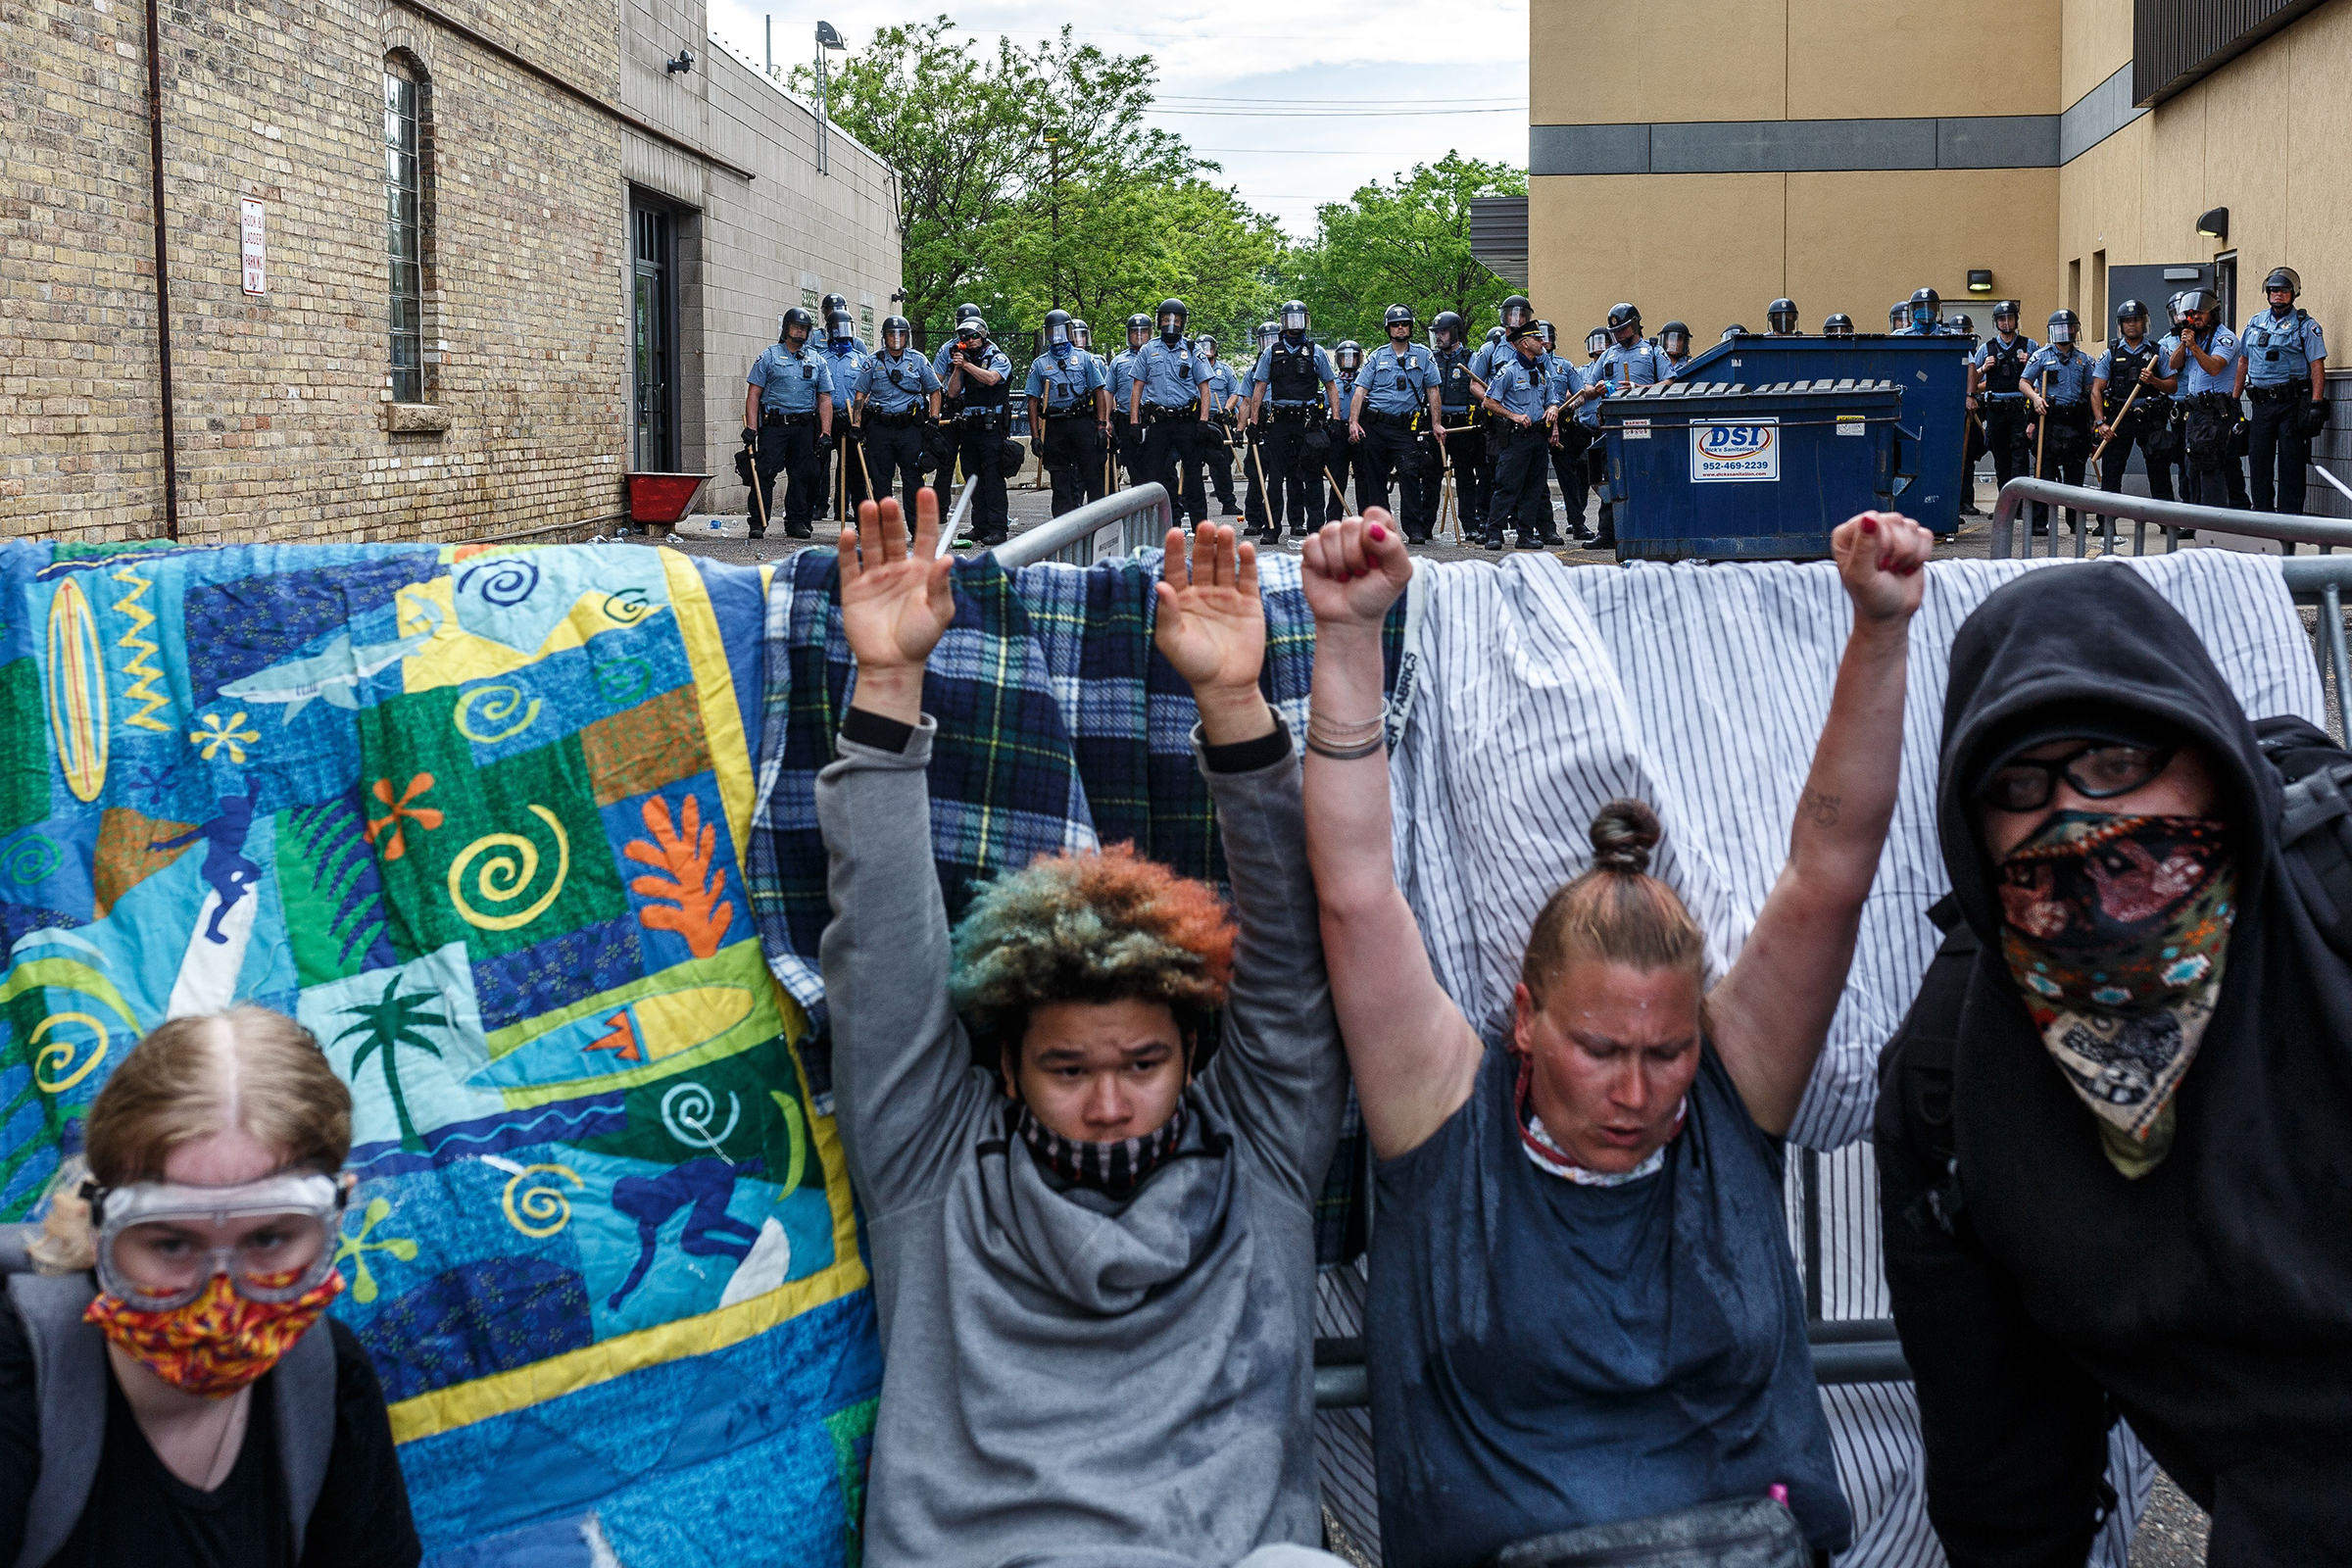 Protesters hold their hands up as they cry from from tear gas during a demonstration calling for justice for George Floyd on May 27, two days after his death.